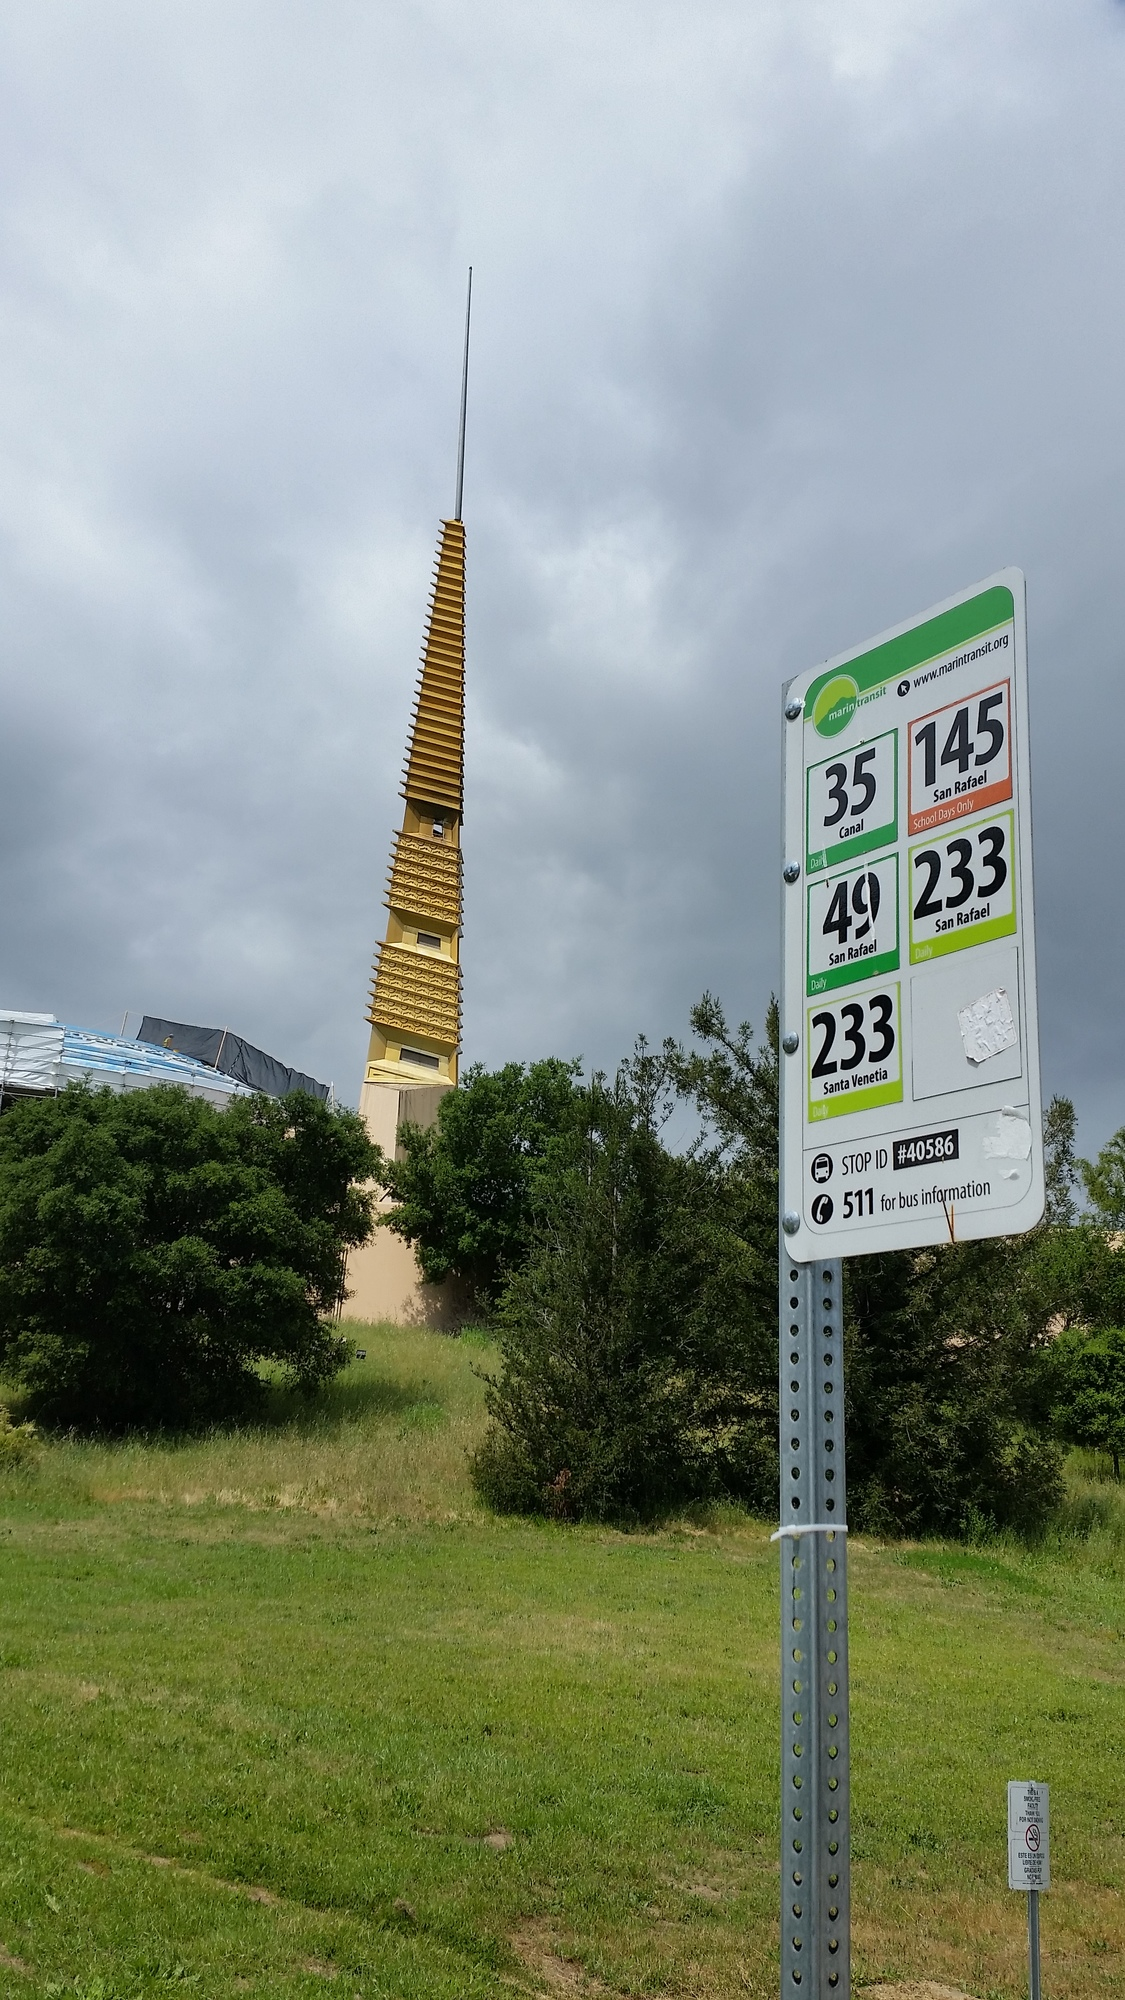 Marin Transit route sign in front of civic center's golden spire